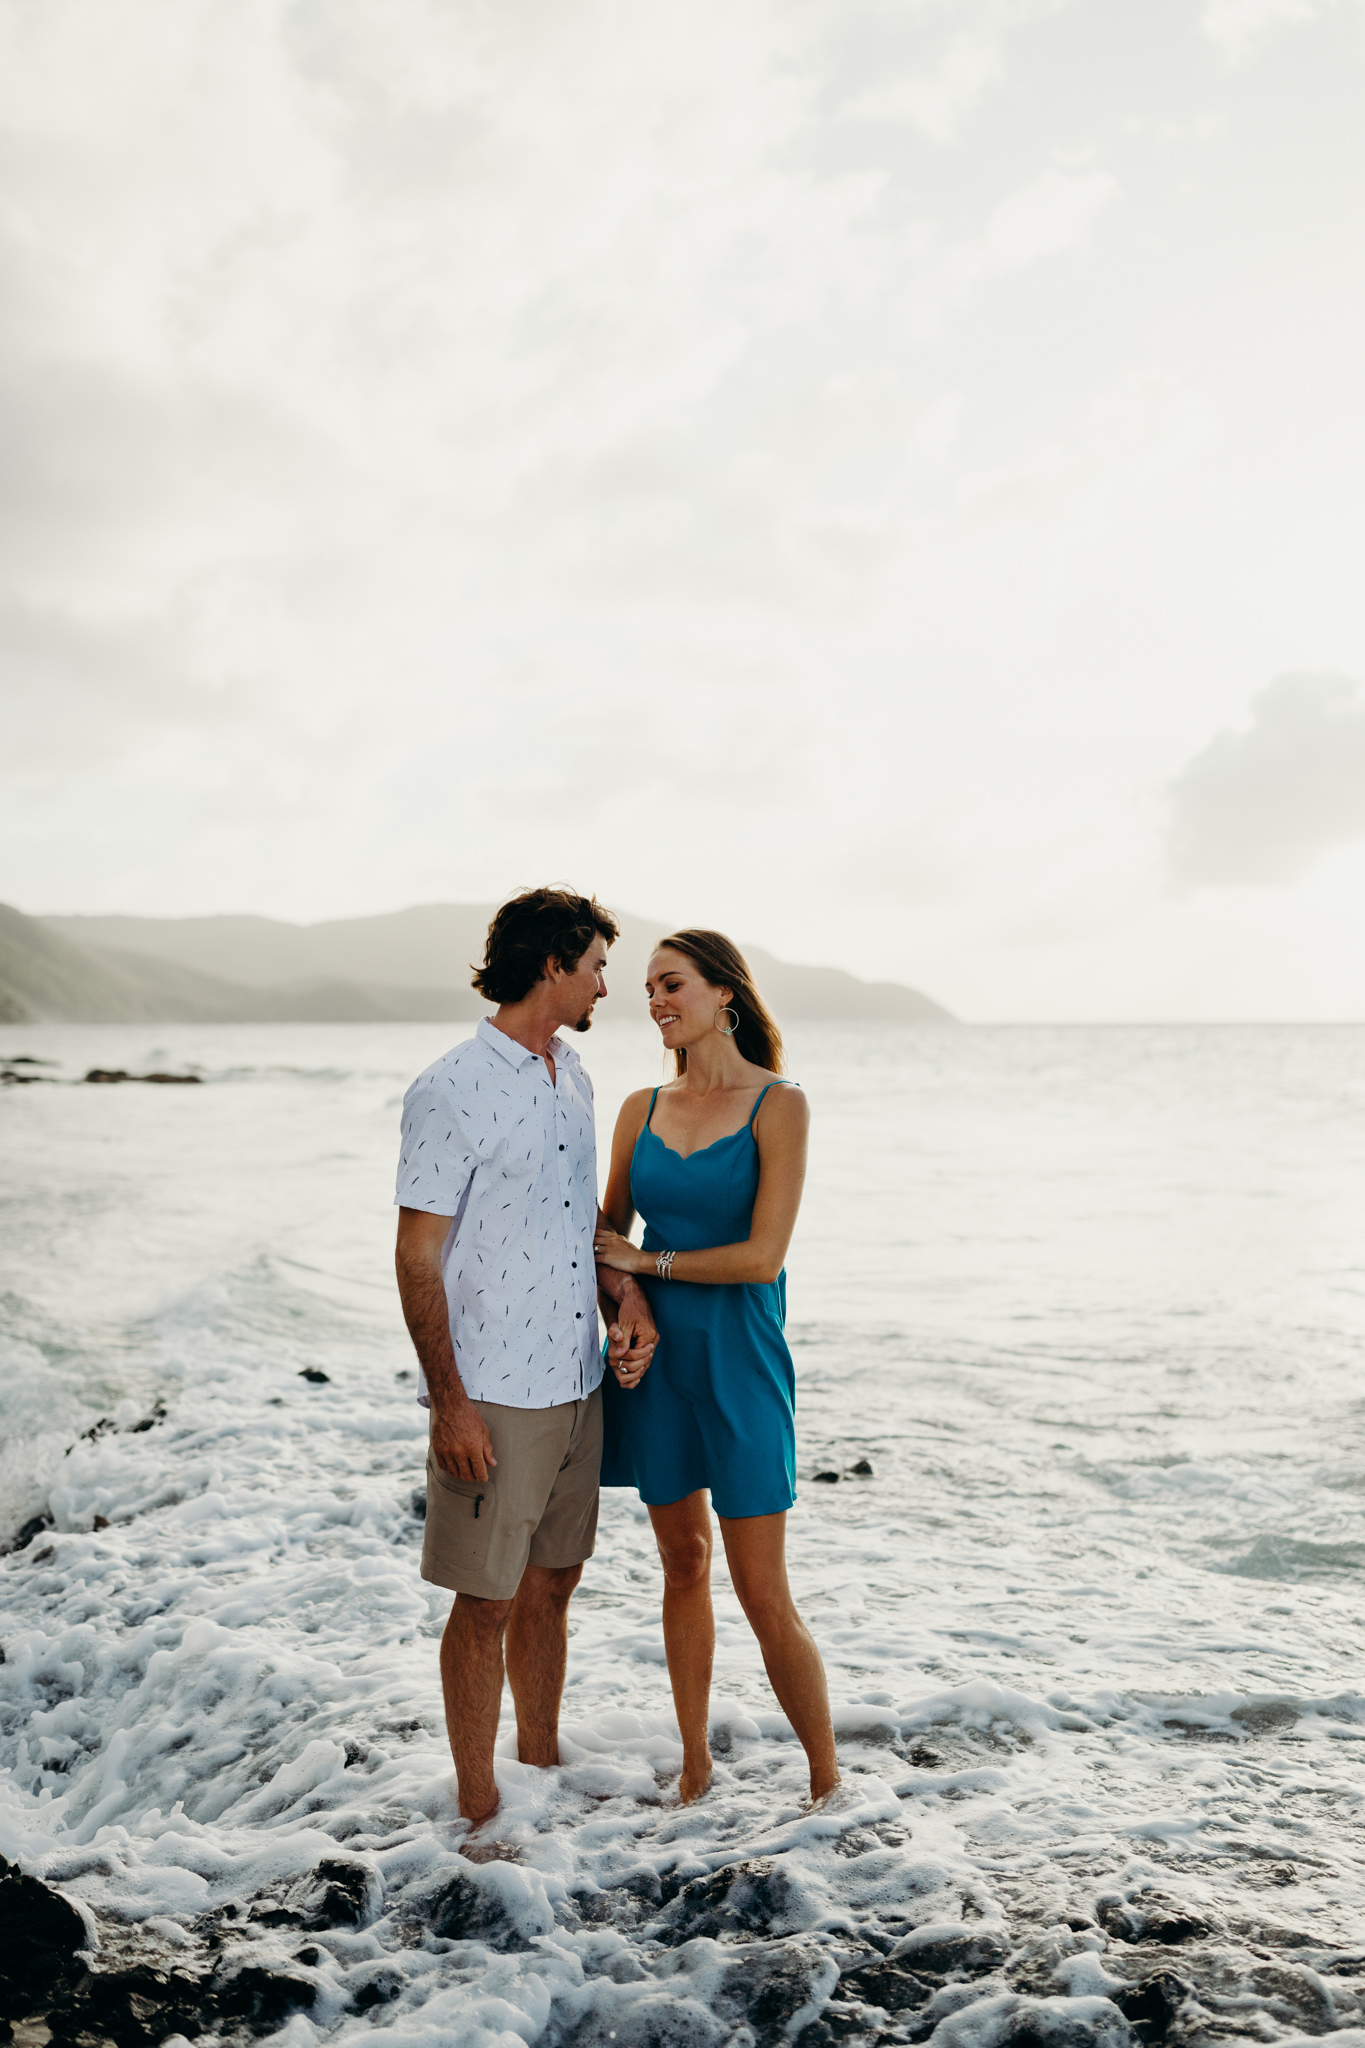 North Shore Engagement Session on the Beach on St. Croix in the Virgin Islands | Cruz Bay | Caribbean Wedding | St. Croix Wedding Photographer | St. Thomas Wedding | Tropical Honeymoon | Frederiksted Pier | Beach Couples Photos | Charlotte Amalie | Palm Trees | Caribbean Sea | Destination Wedding Photographer | Traveling Photographer | Hike to Elope | Rad Couples | St. Thomas | Island Vibes | Adventurous Island Elopement | Virgin Islands | Meredith Zimmerman Photography